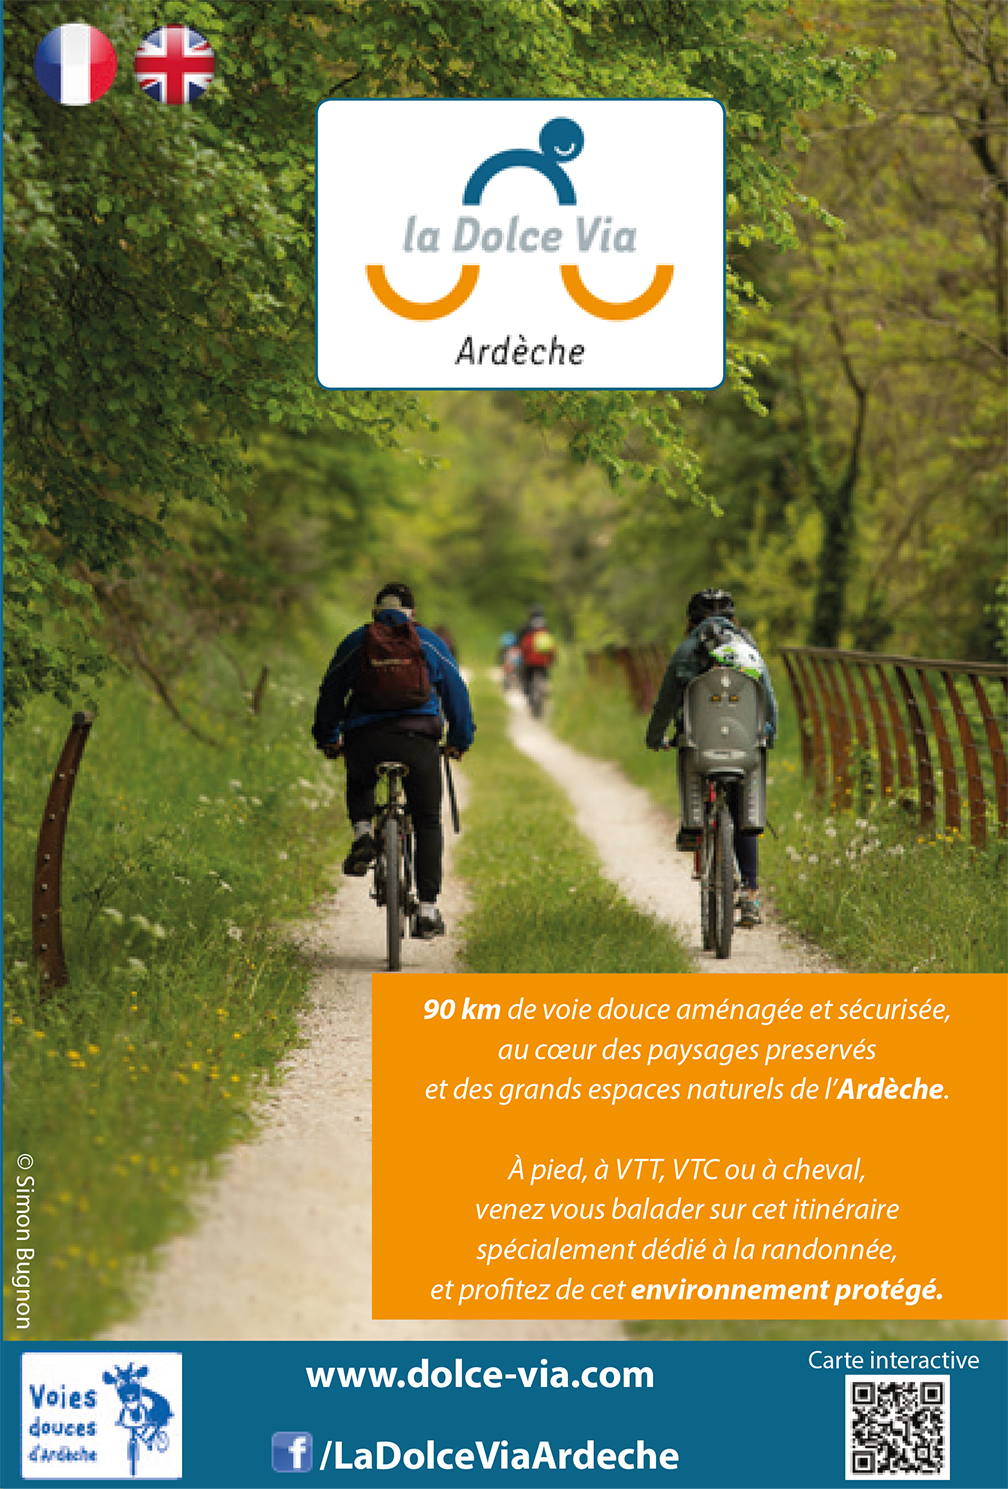 Dolce via cycle path brochure